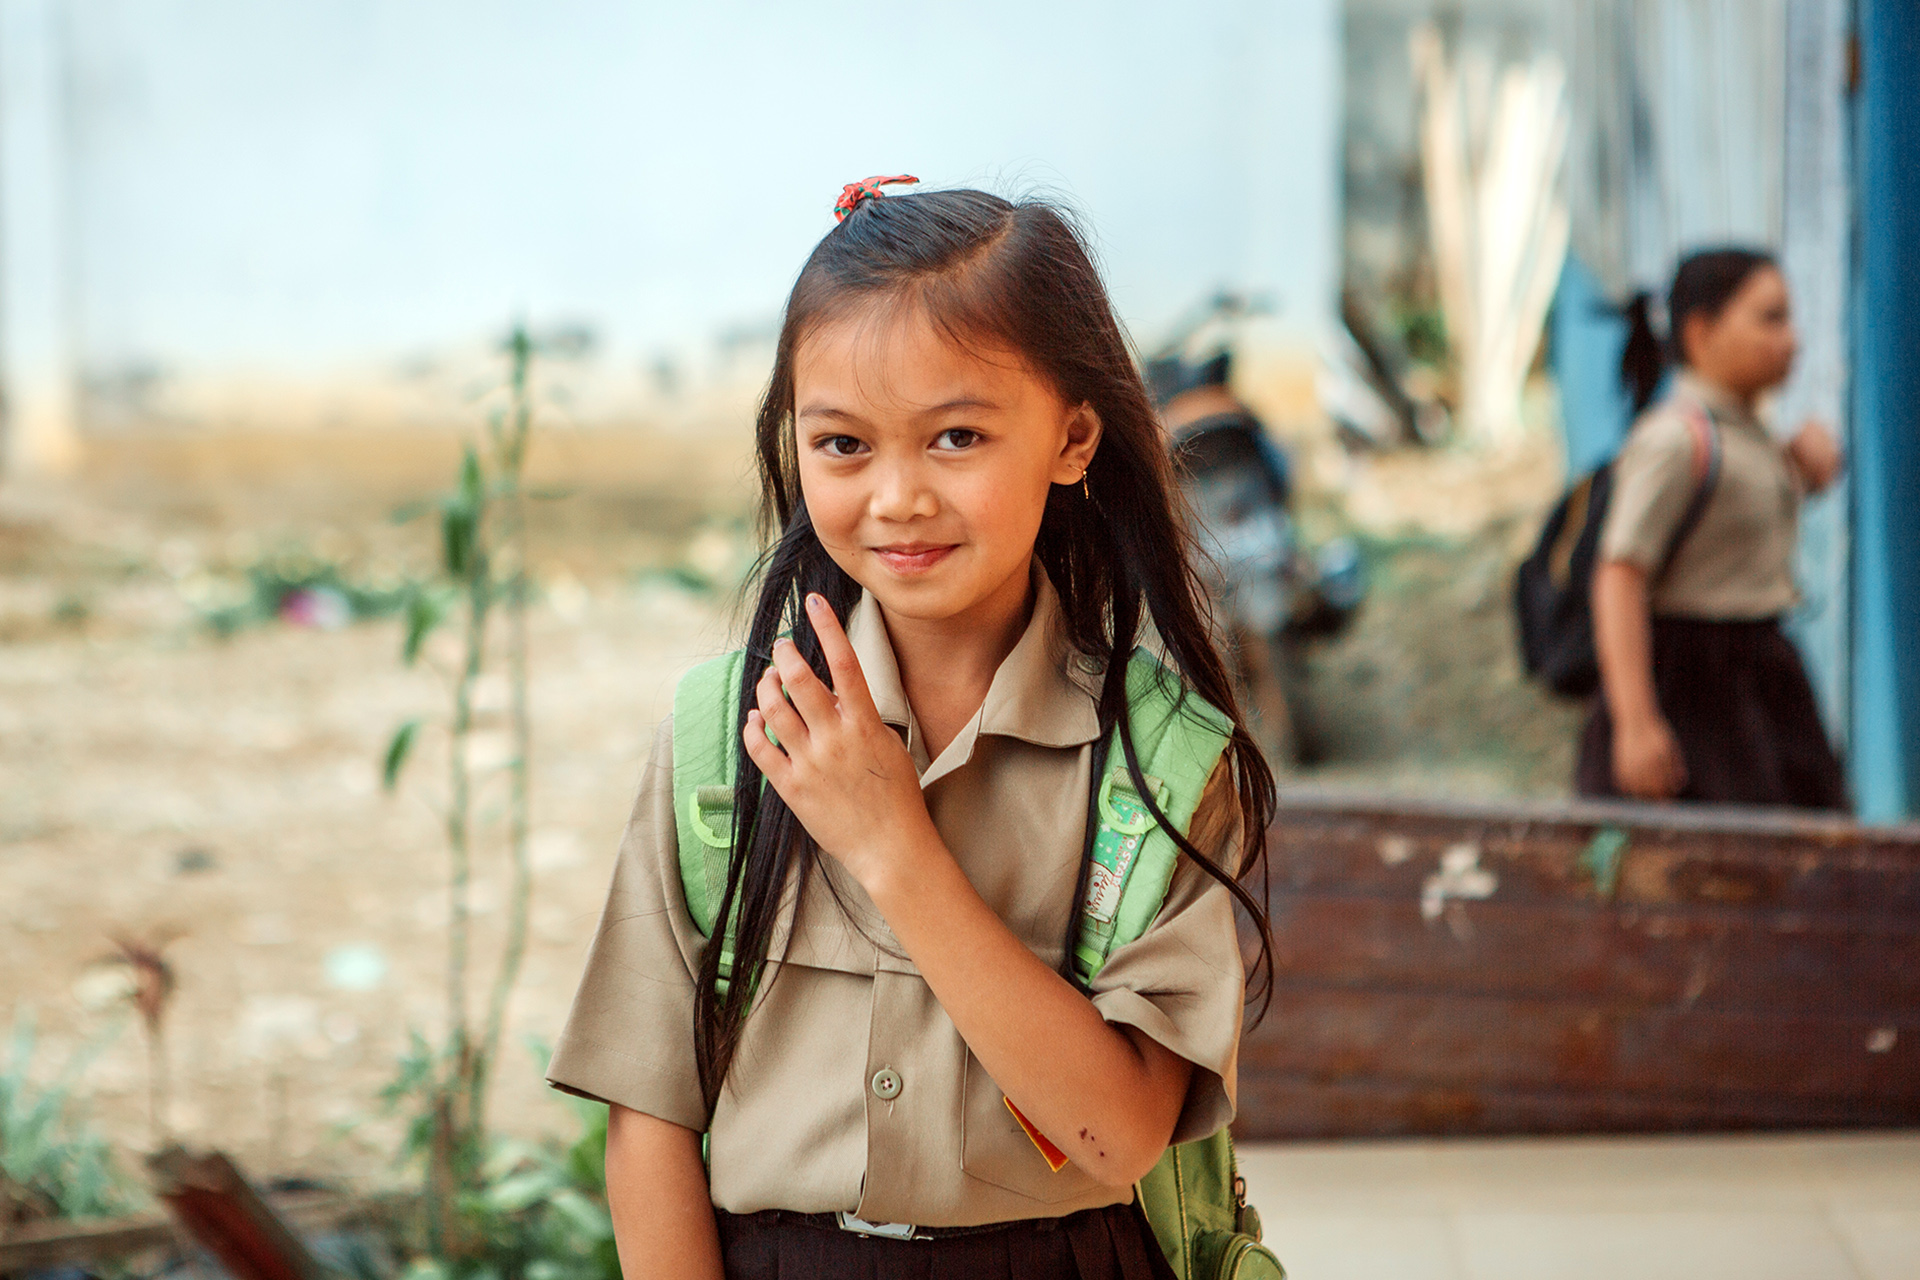 a young girl in Indonesia stands in her school uniform